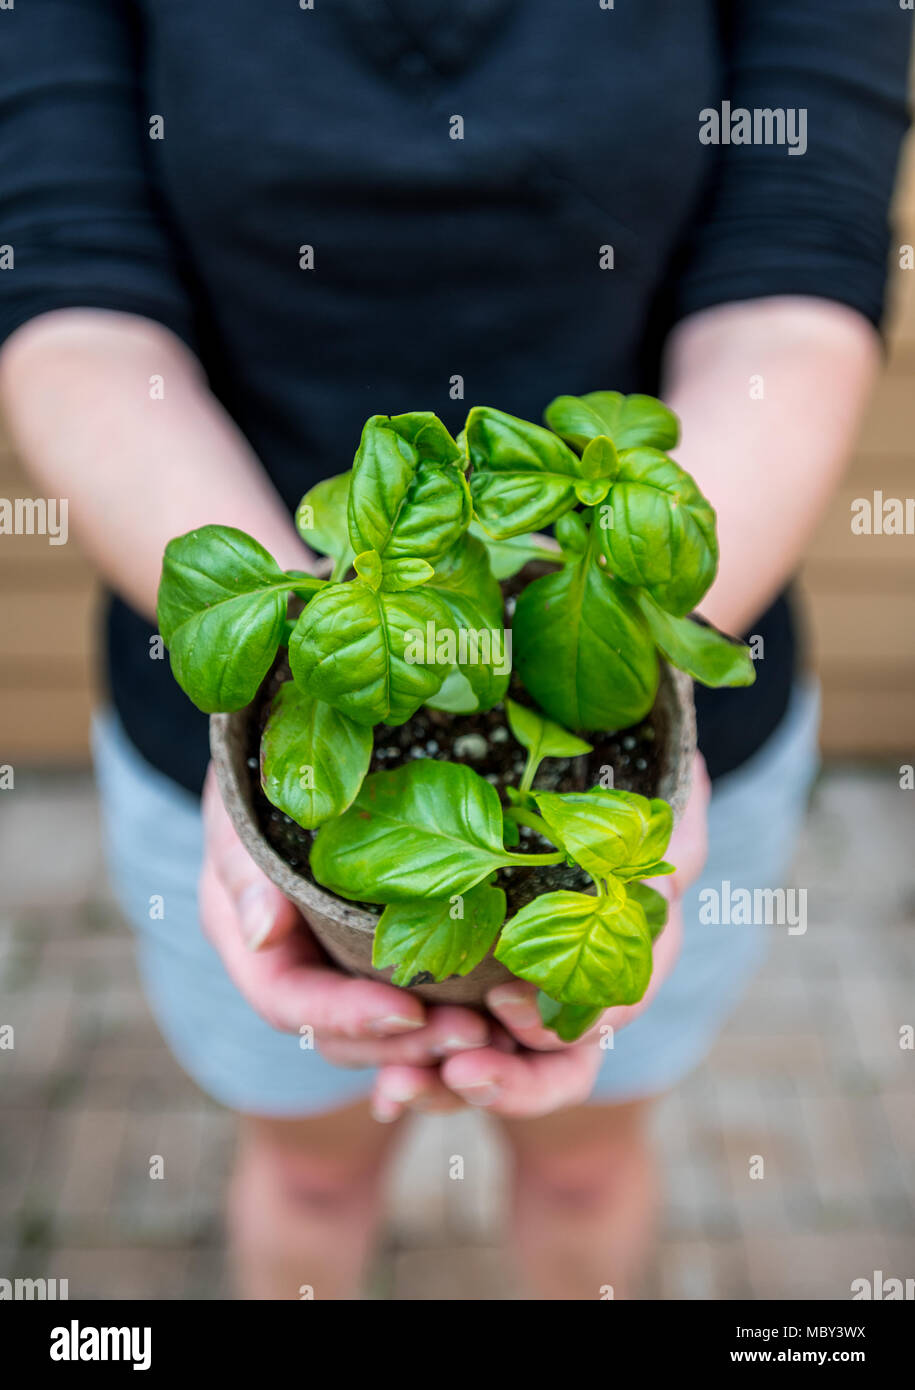 Looking Down on Young Basil Plant in Hands of gardener - Stock Image